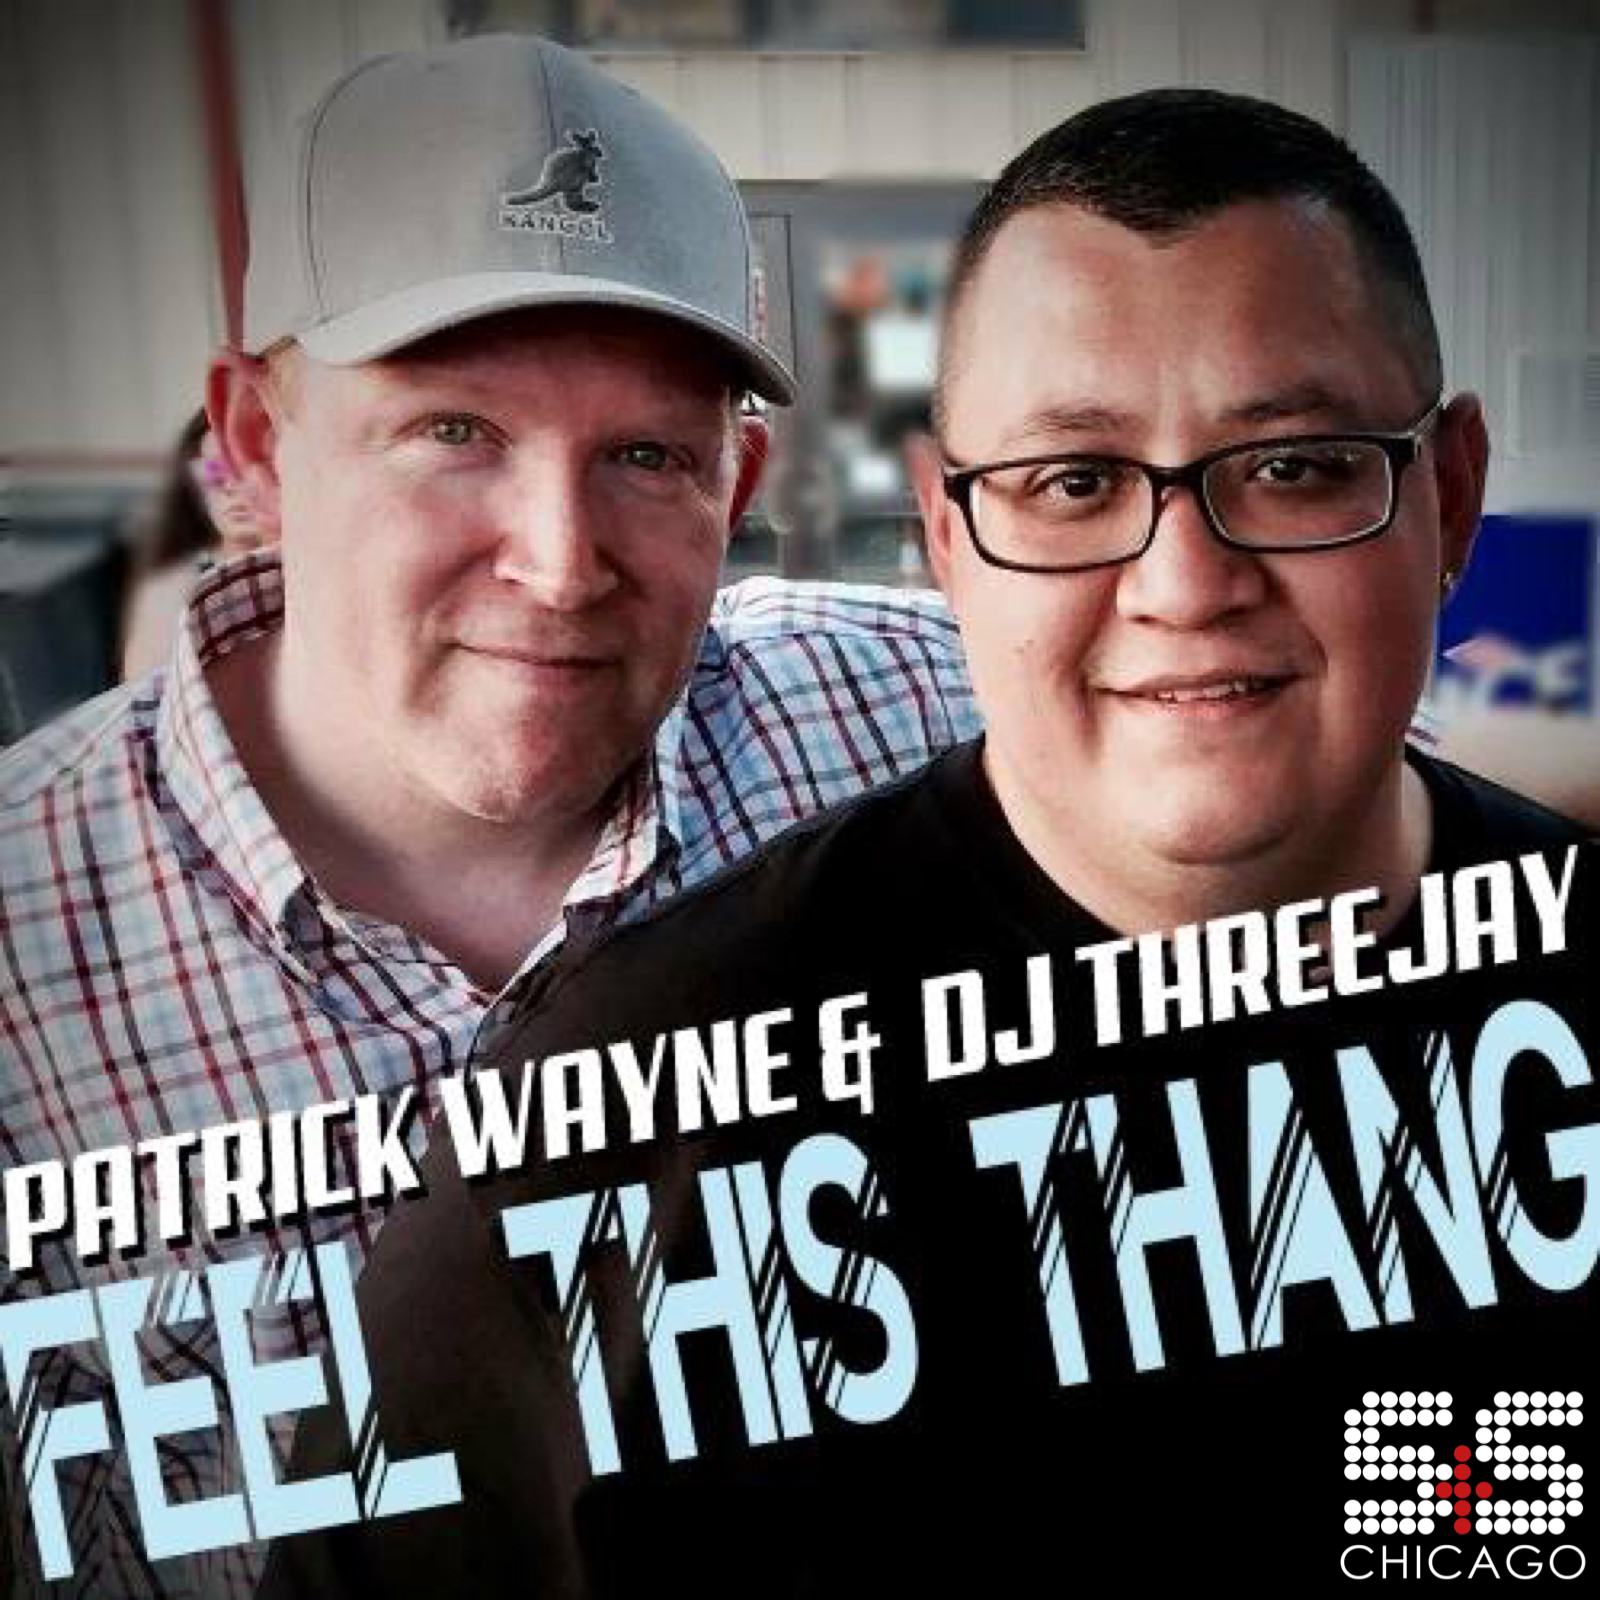 DJ Threejay & Patrick Wayne - Feel This Thang